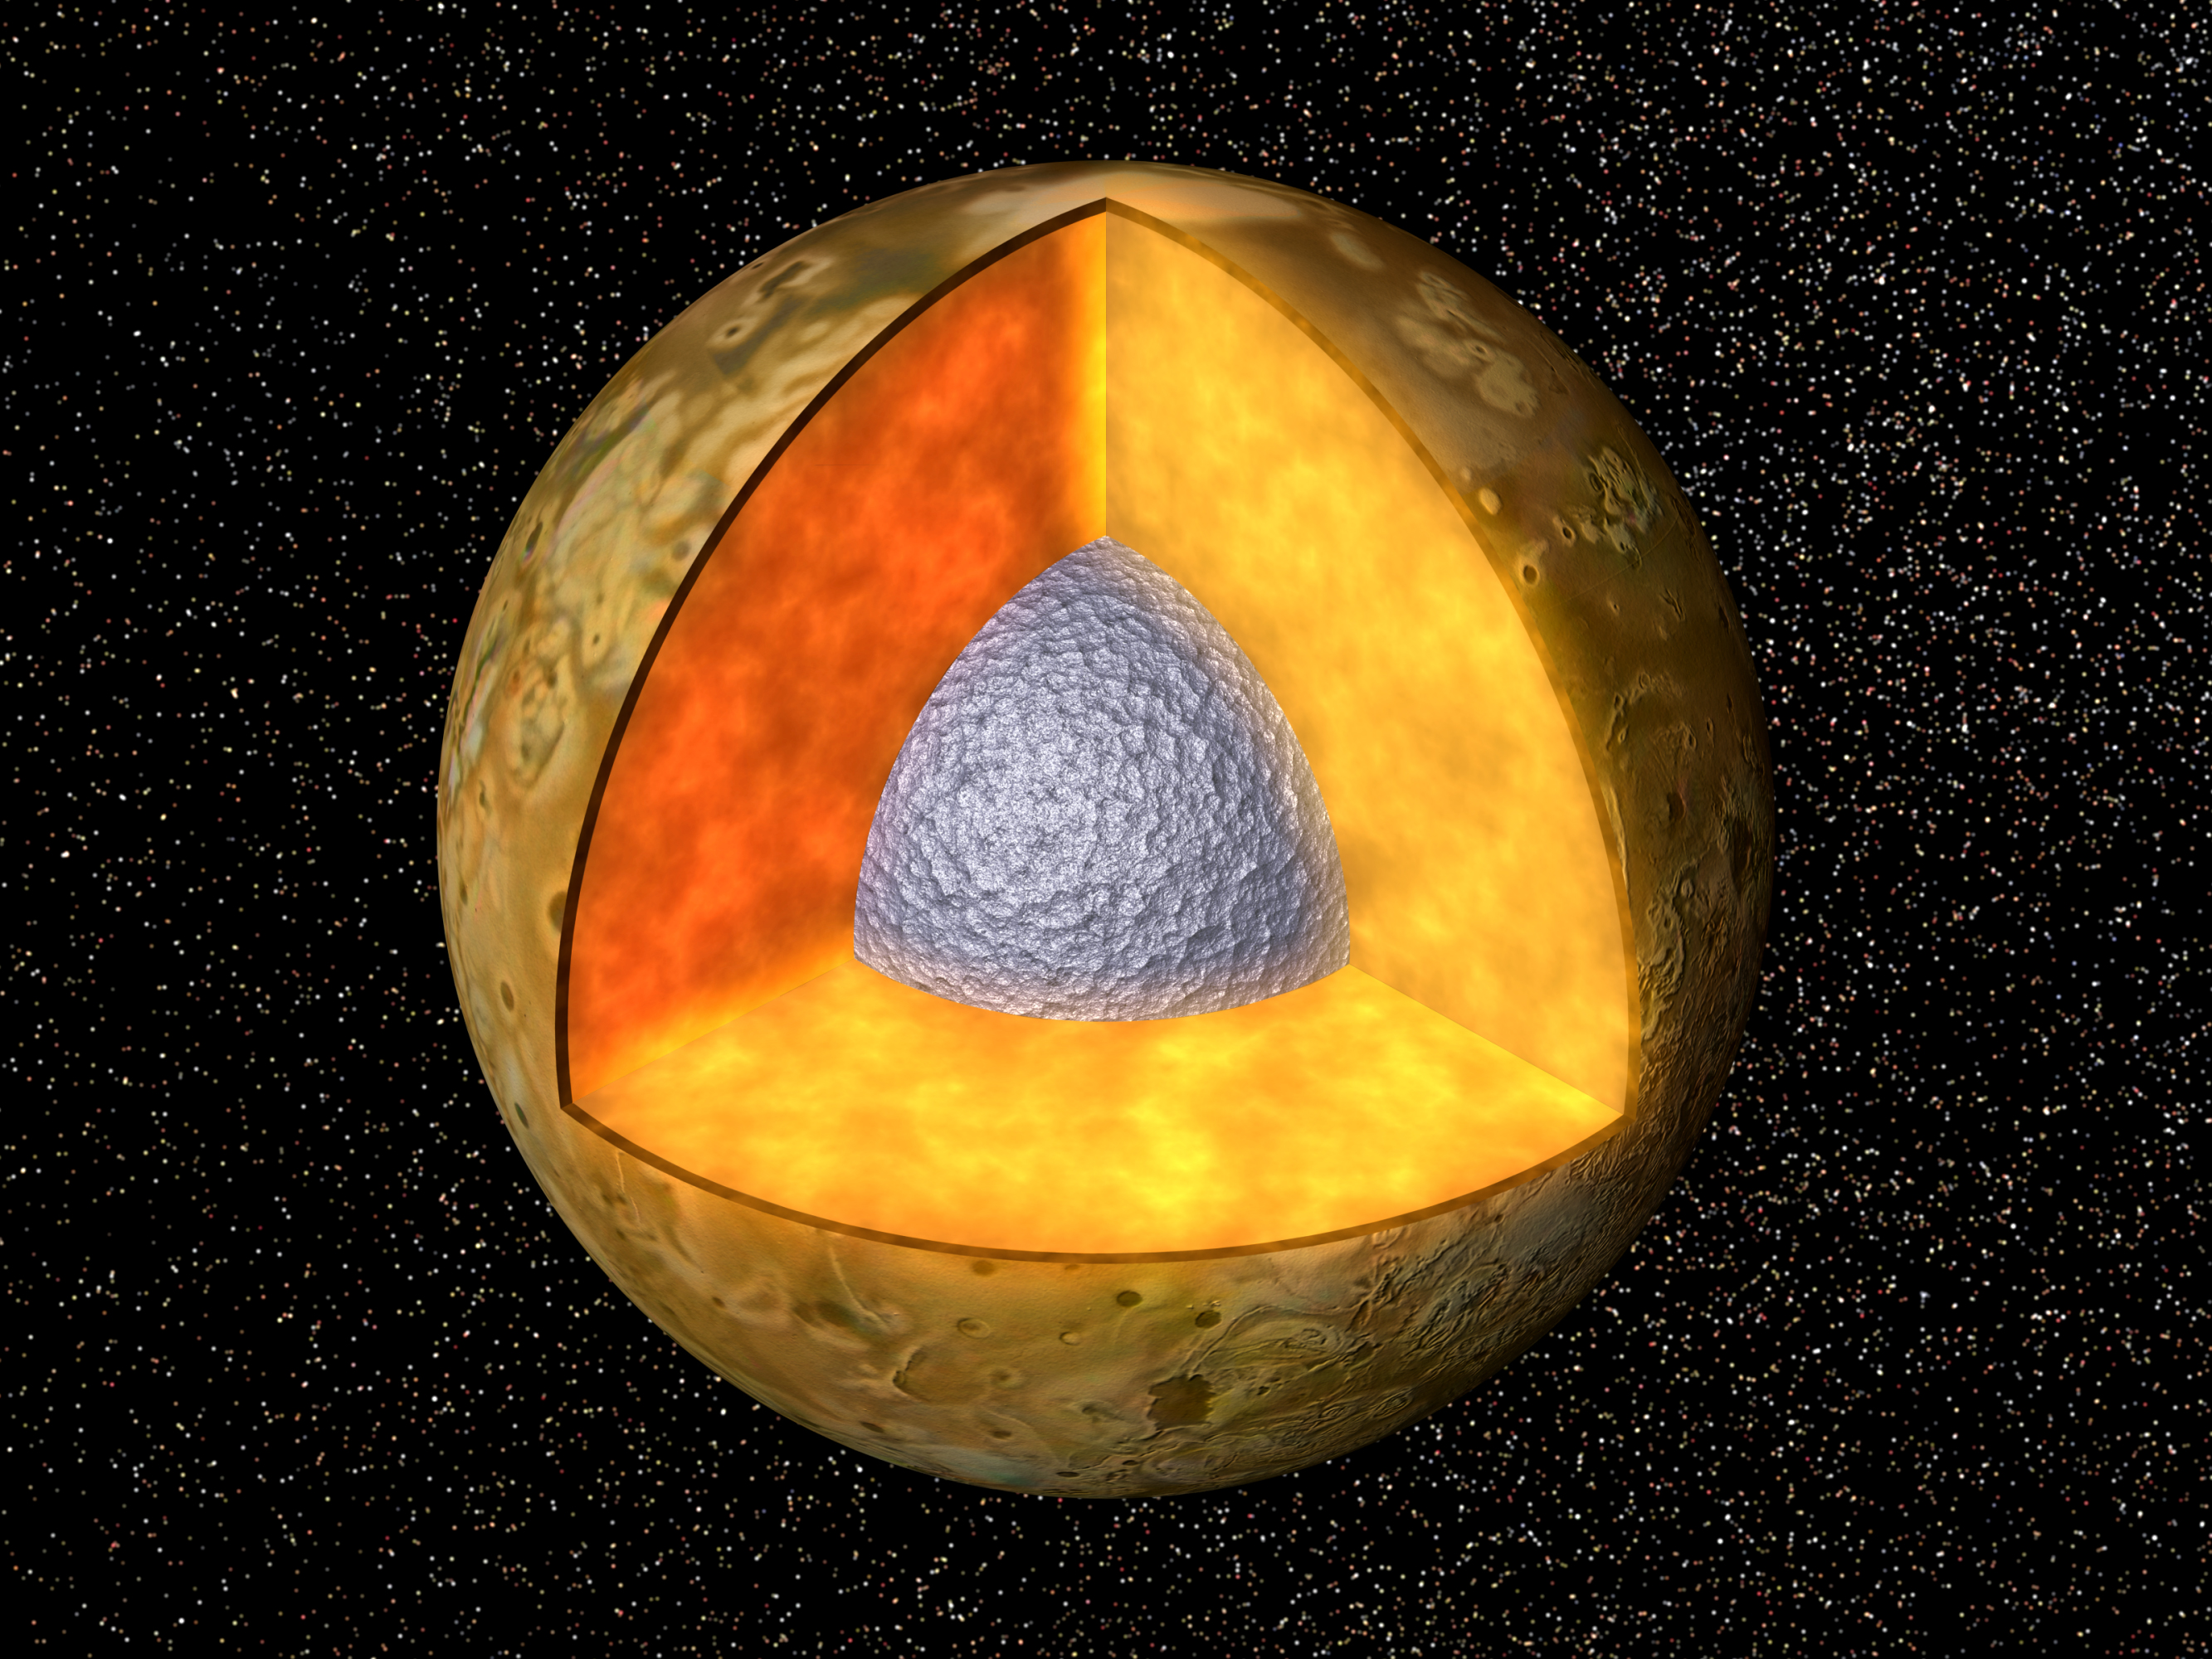 The Earth's Inner Core is over 1.5-billion-year old